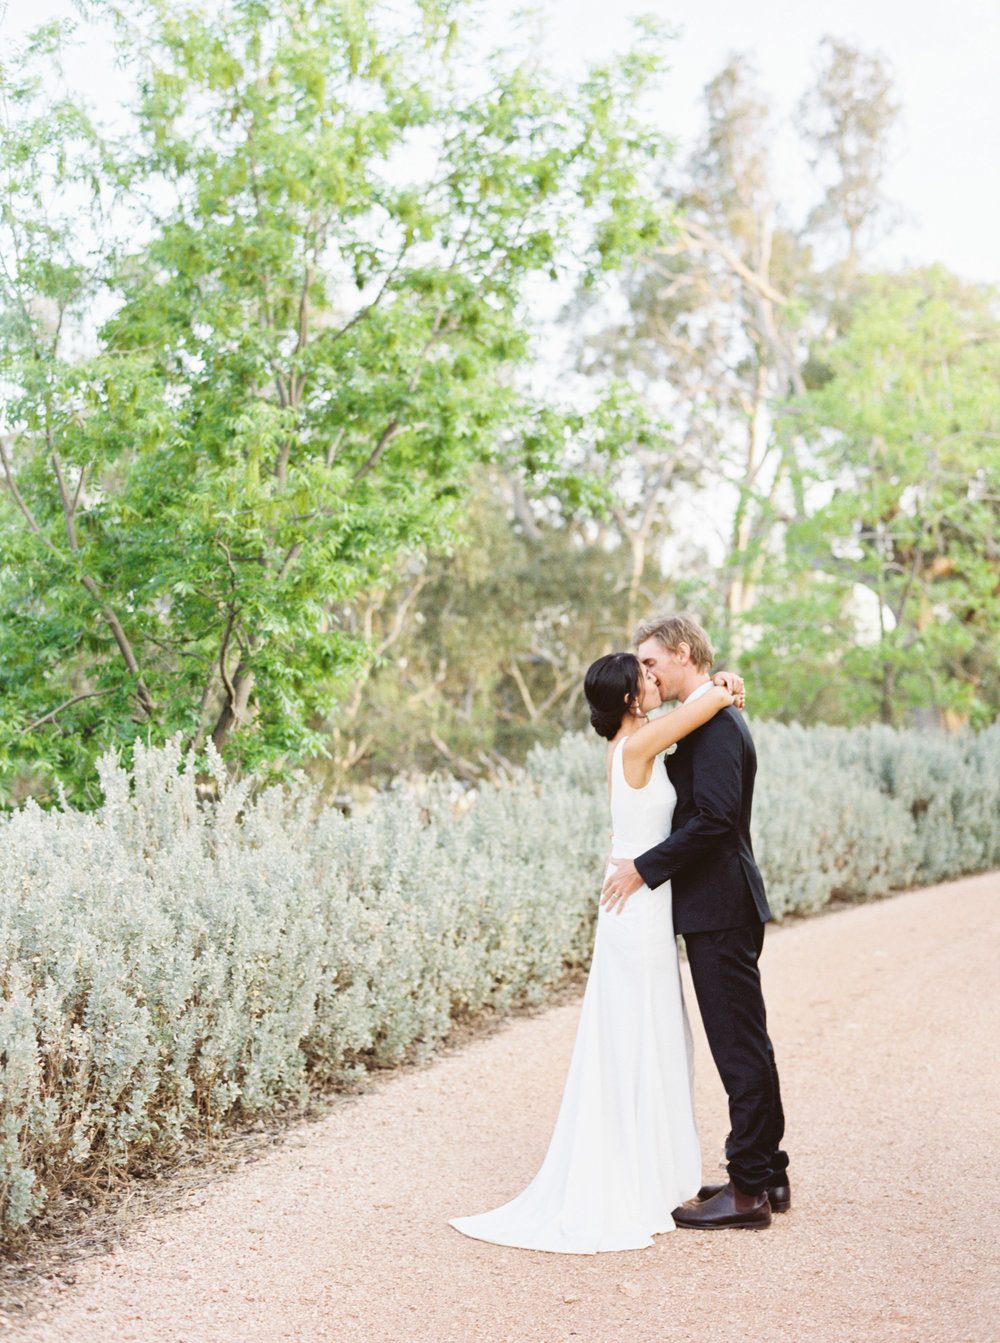 00062- Olive Tree Mediterranean Wedding in Mudgee NSW Australia Fine Art Film Wedding Lifestyle Photographer Sheri McMahon_.jpg